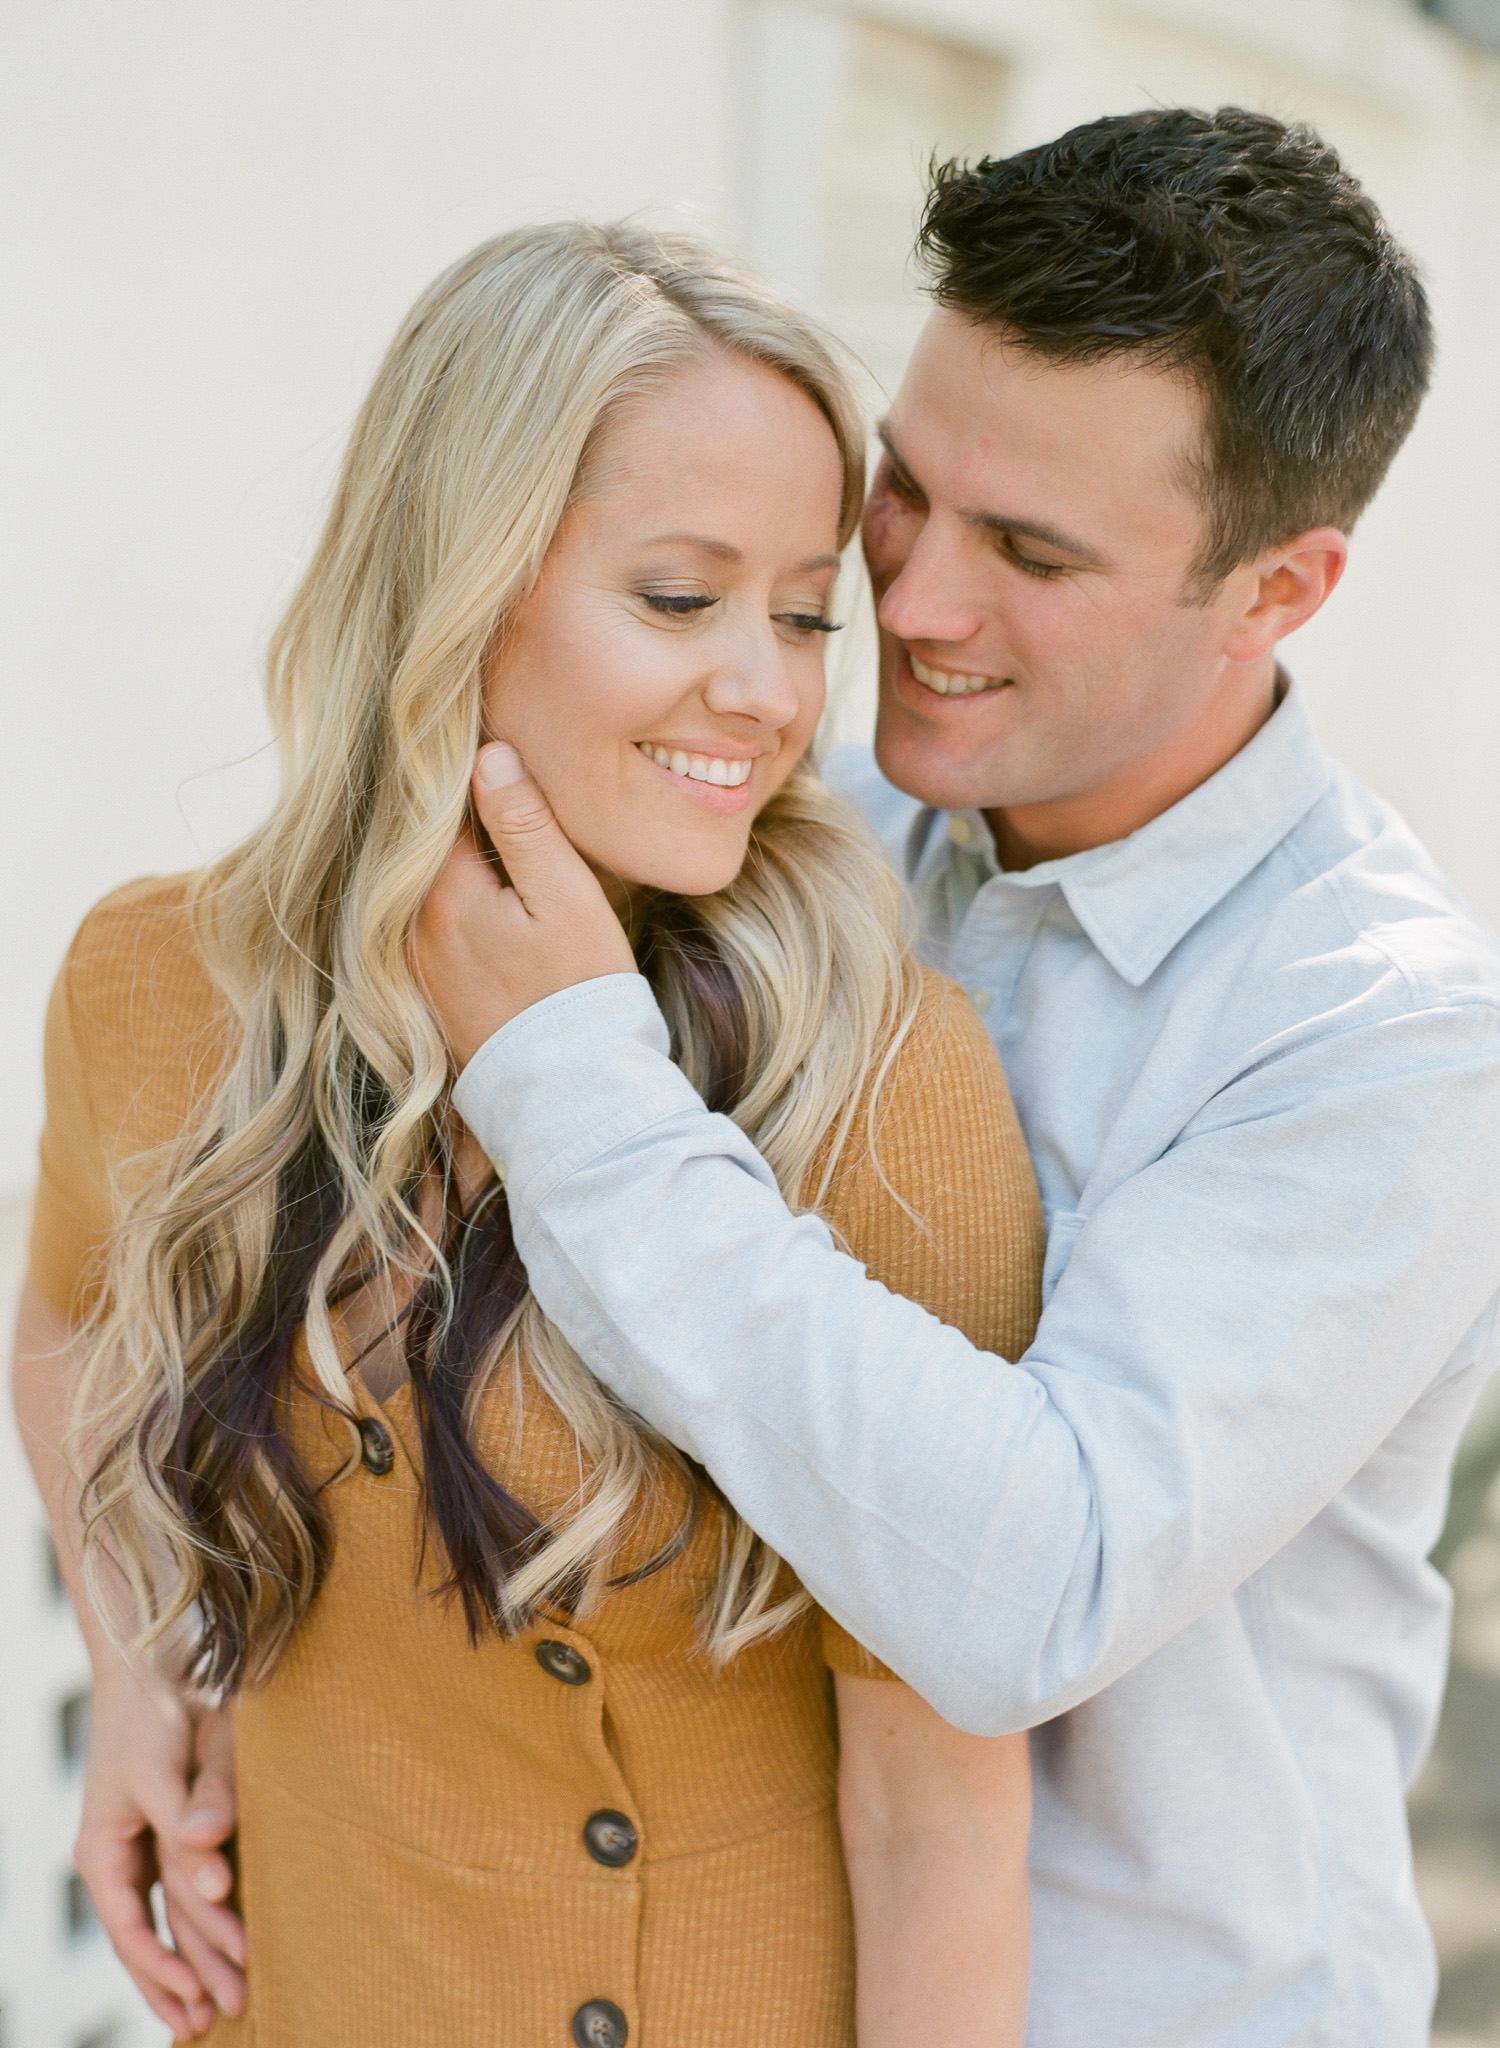 Charleston-Engagement-Photographer-80.jpg